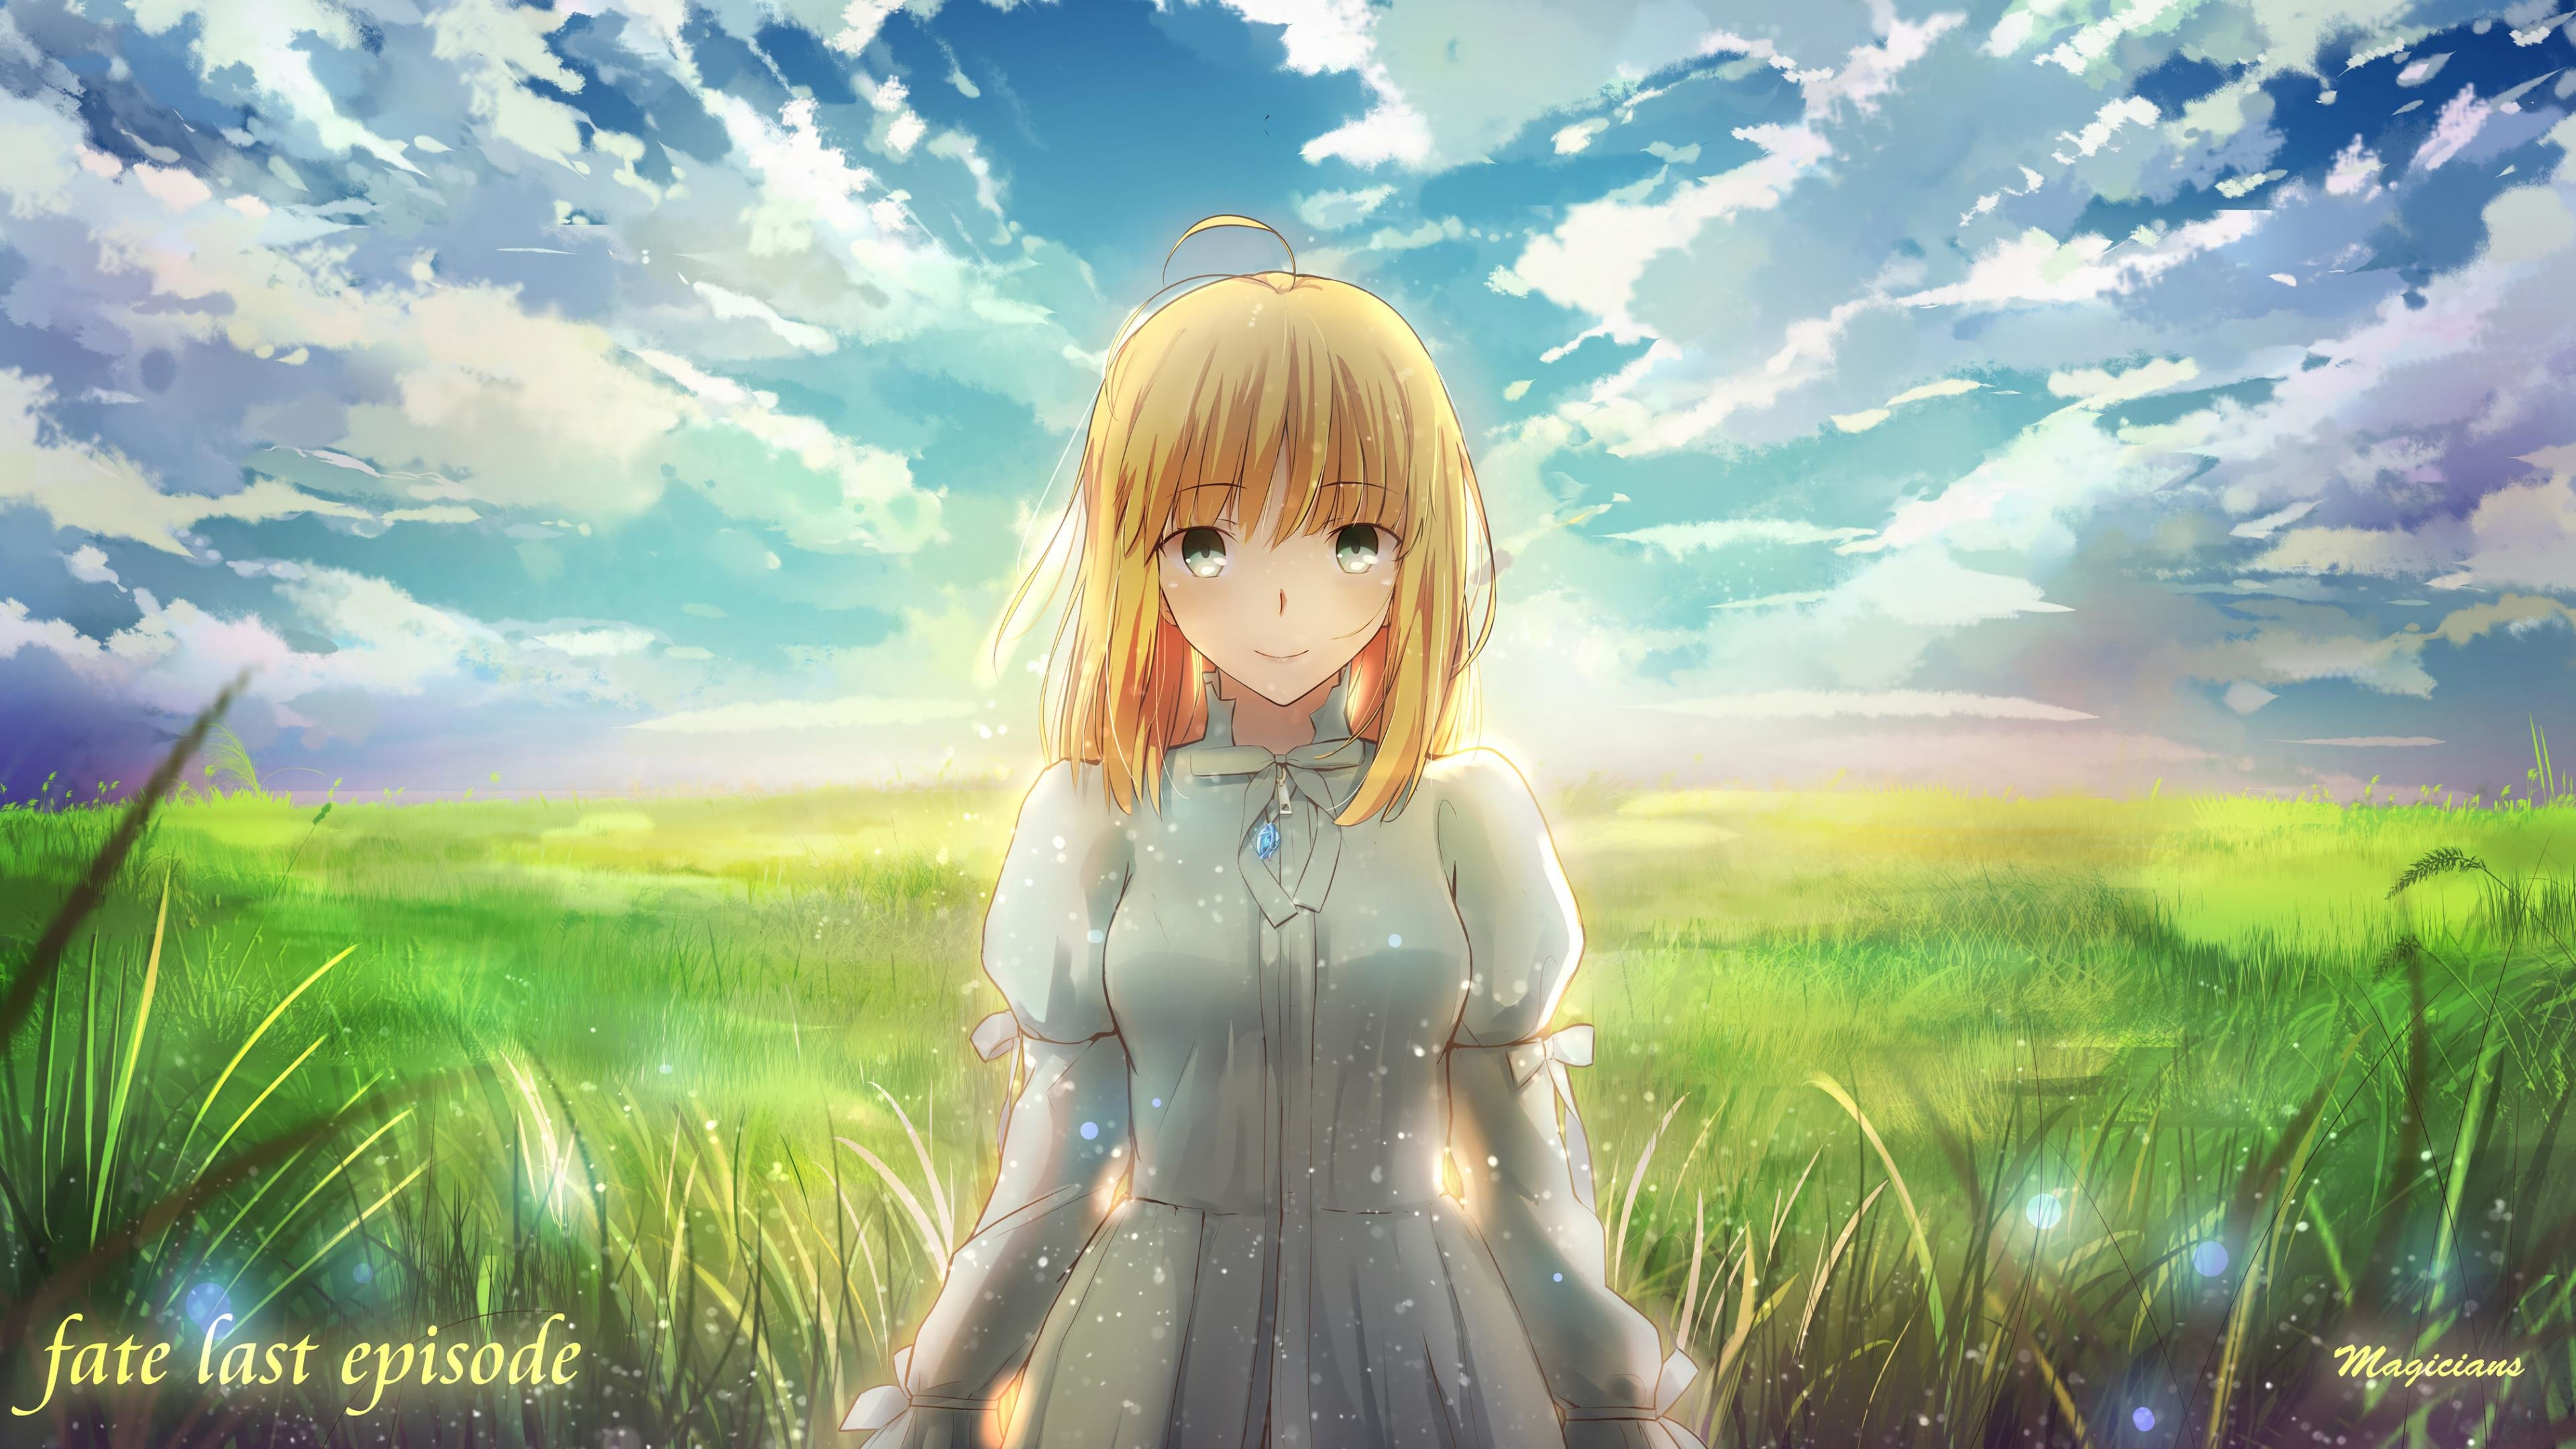 Awesome Saber (Fate Series) free background ID:468858 for hd 4k PC